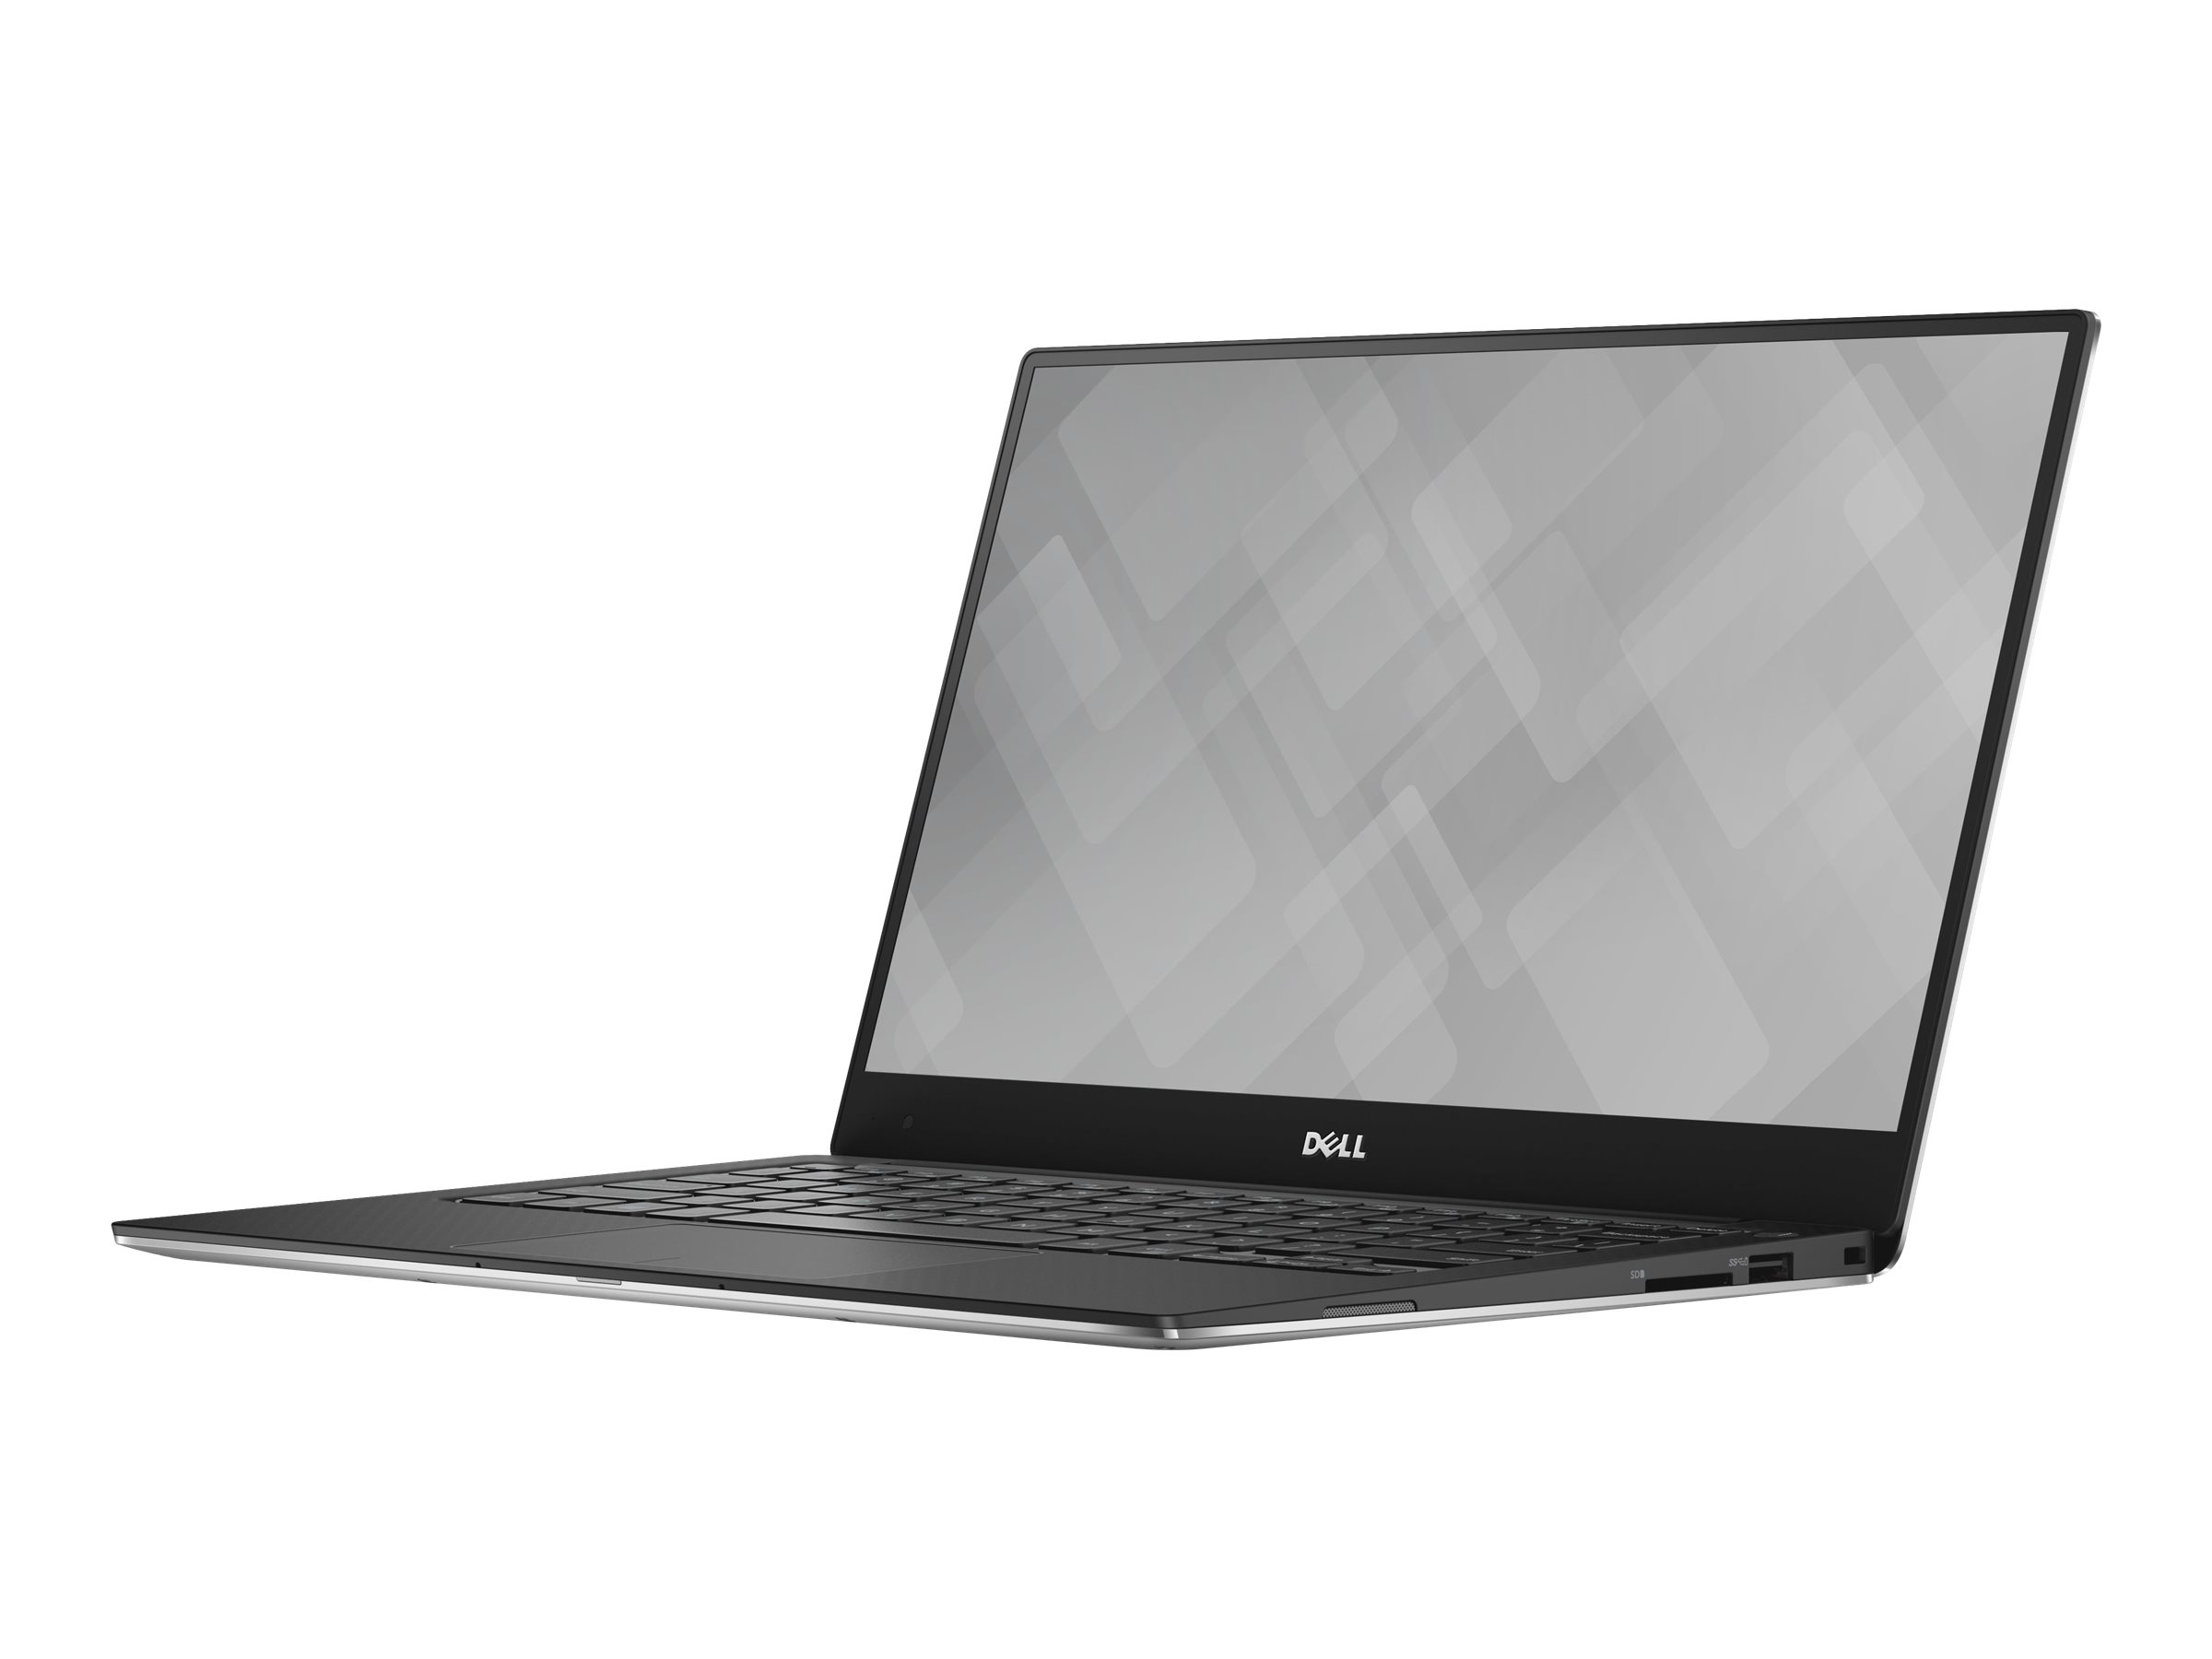 Dell XPS 13 9360 - Core i7 7500U / 2.7 GHz - Win 10 Pro 64-Bit - 16 GB RAM - 1 TB SSD - 33.705 cm (13.3